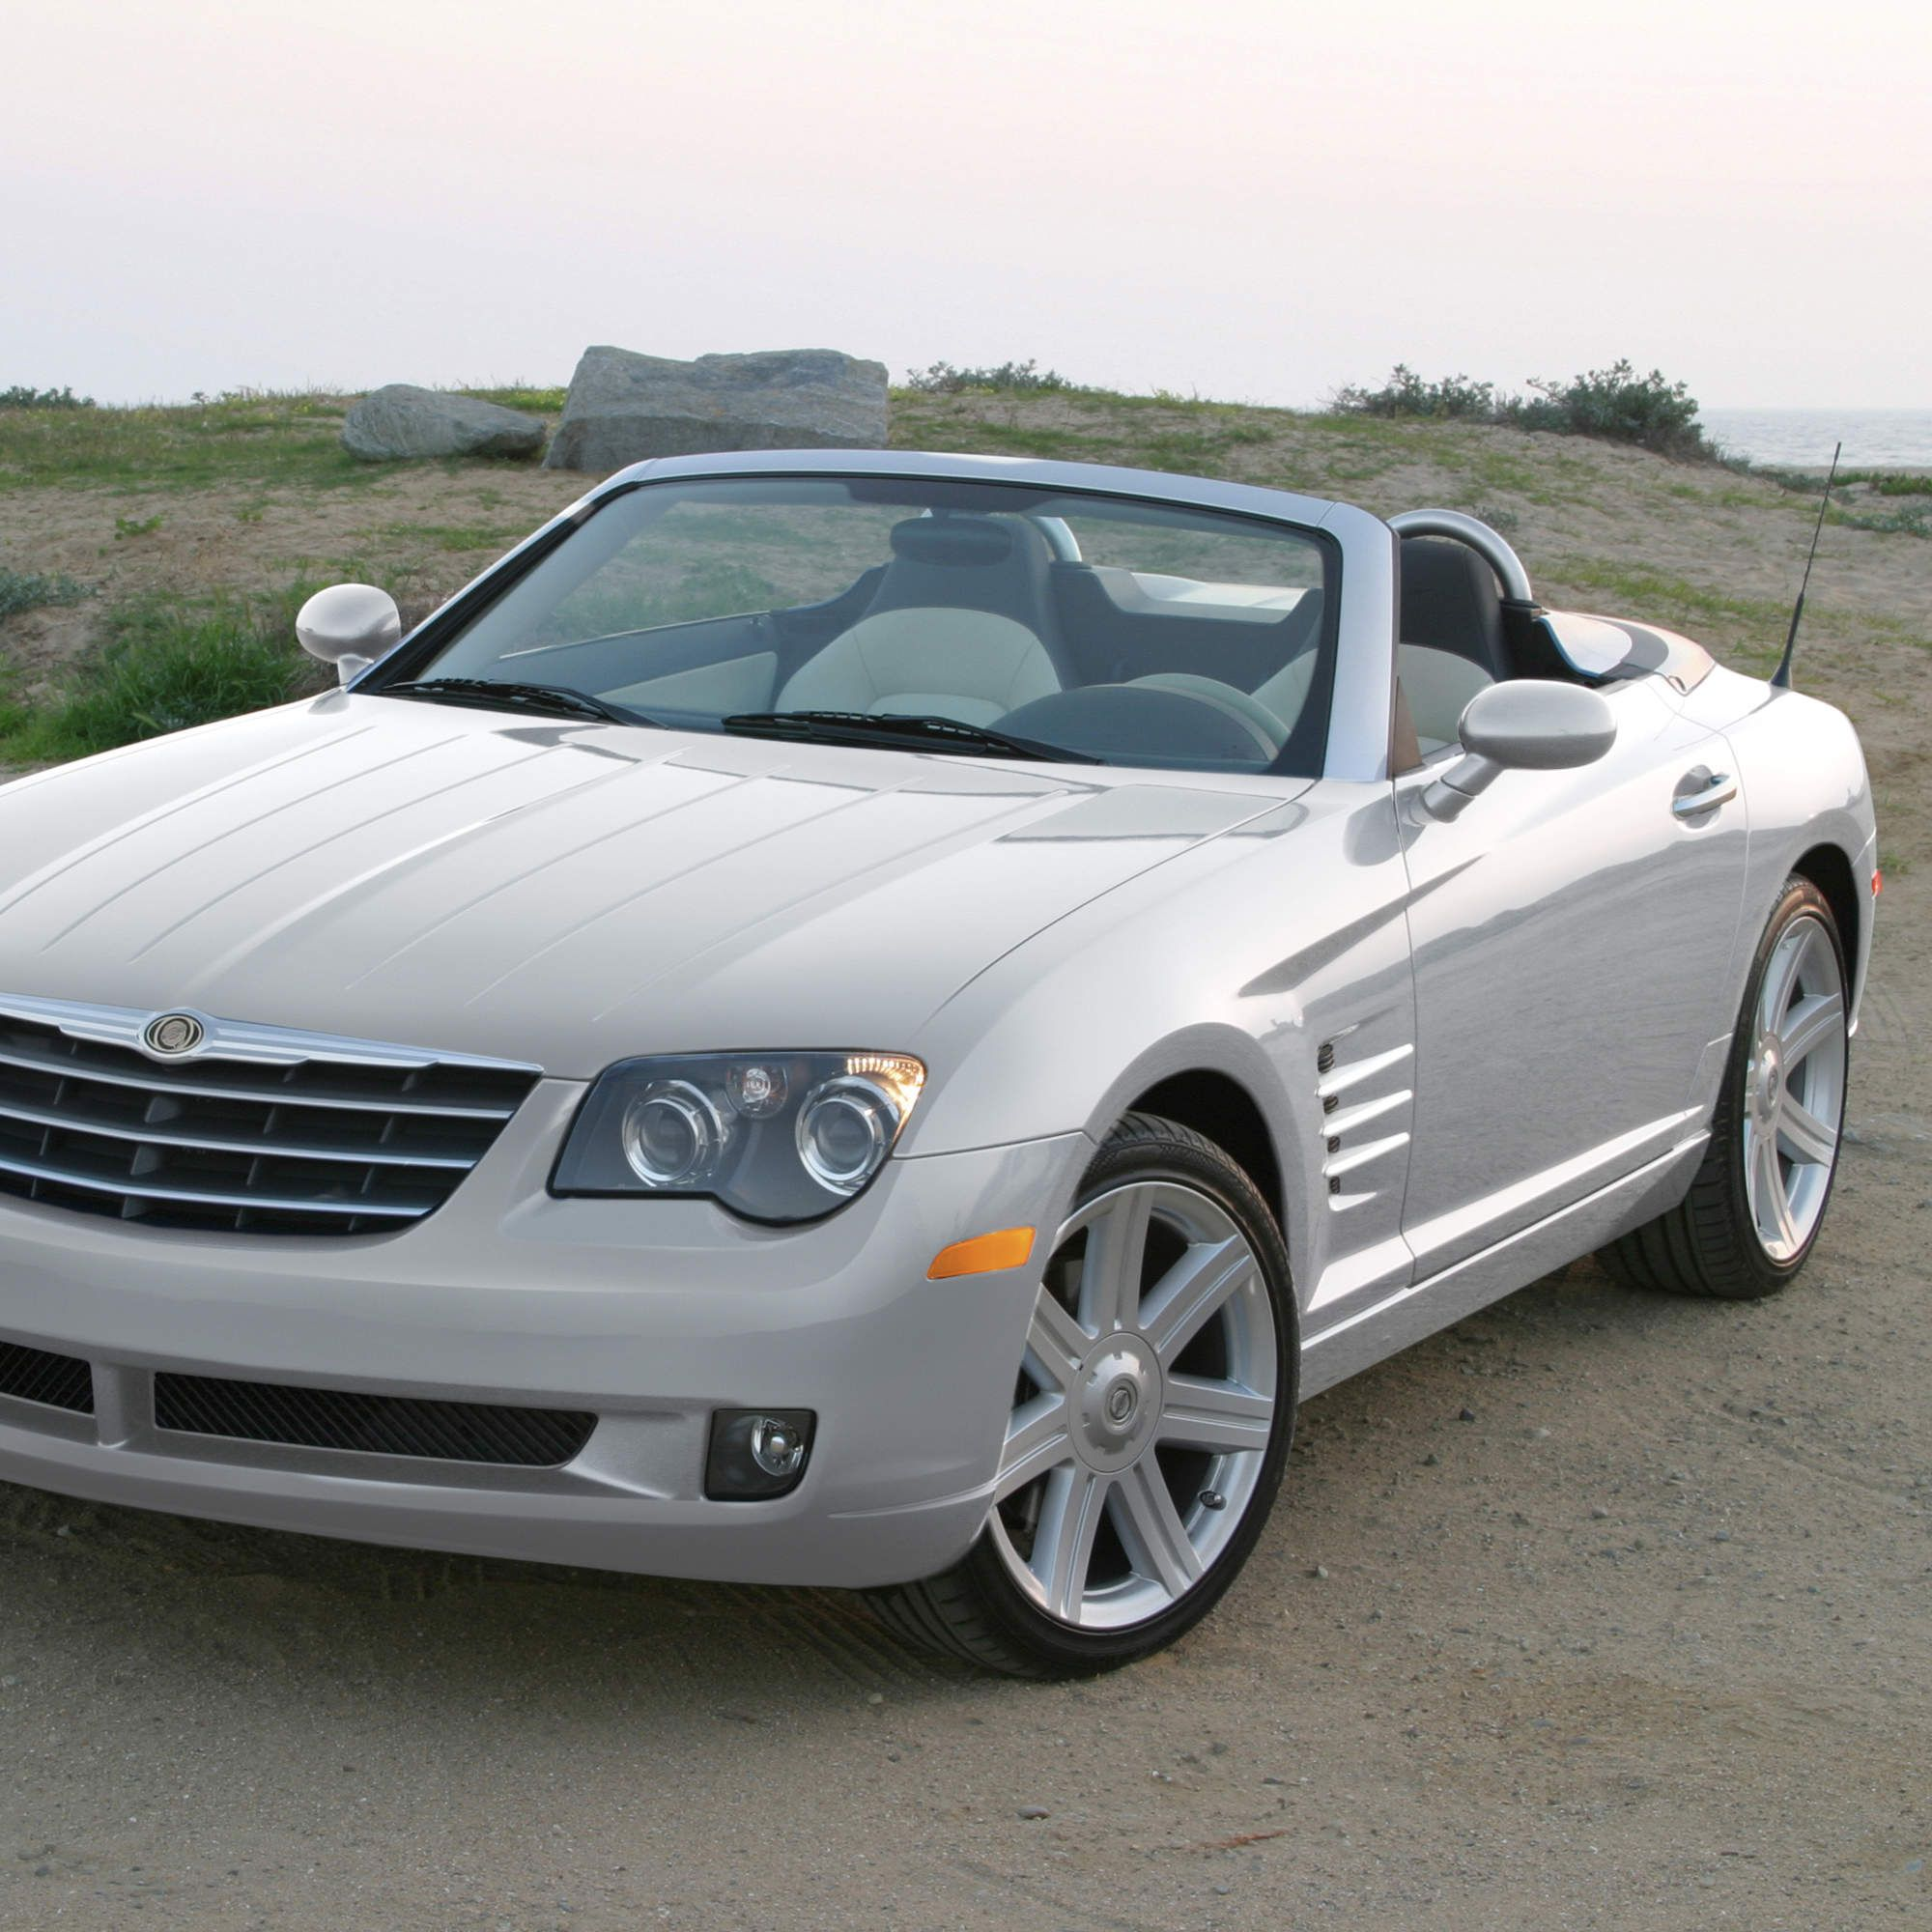 10 Underrated American Cars You Can Buy for Under 5k